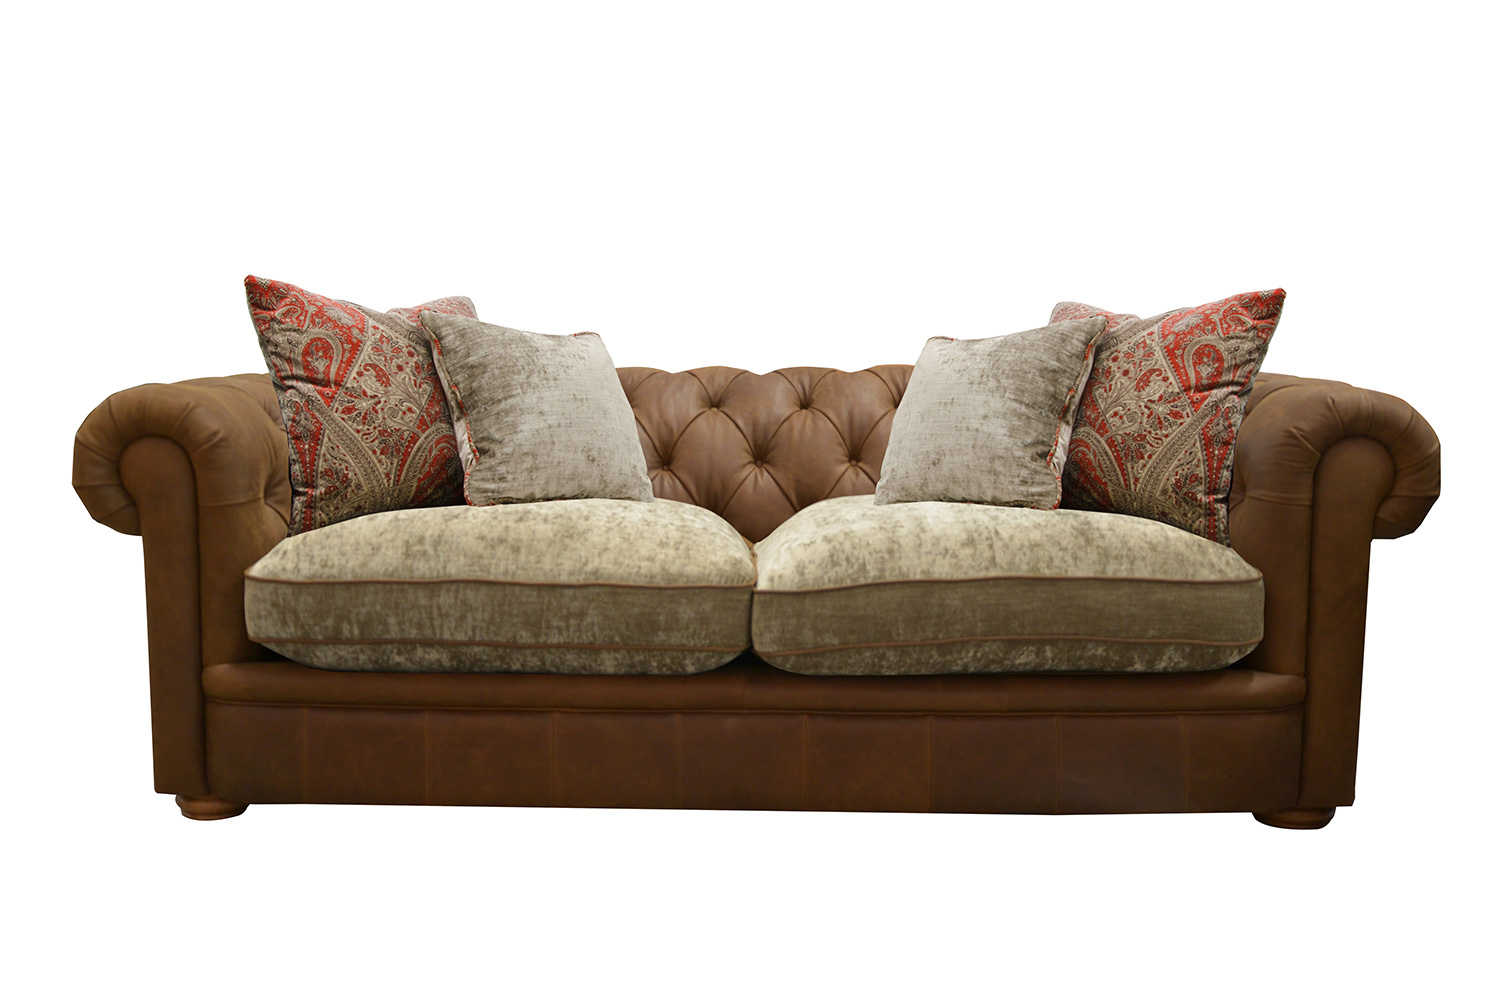 Midi Sofa in Jin Brown (Option 1)